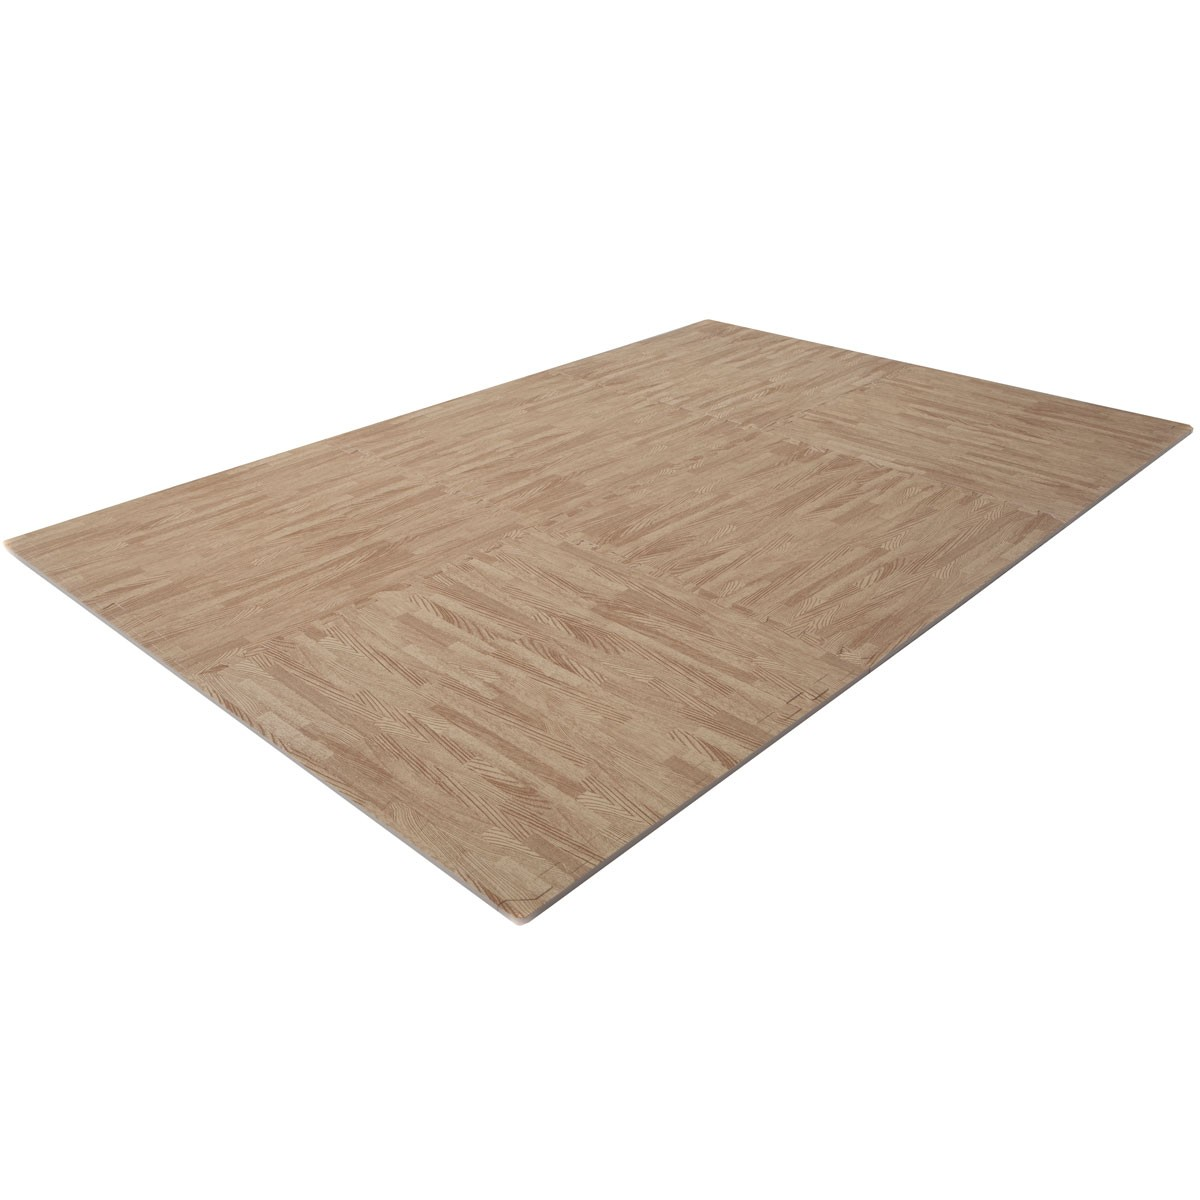 Finnlo floor mat with real wood effect buy now for Wood floor mat